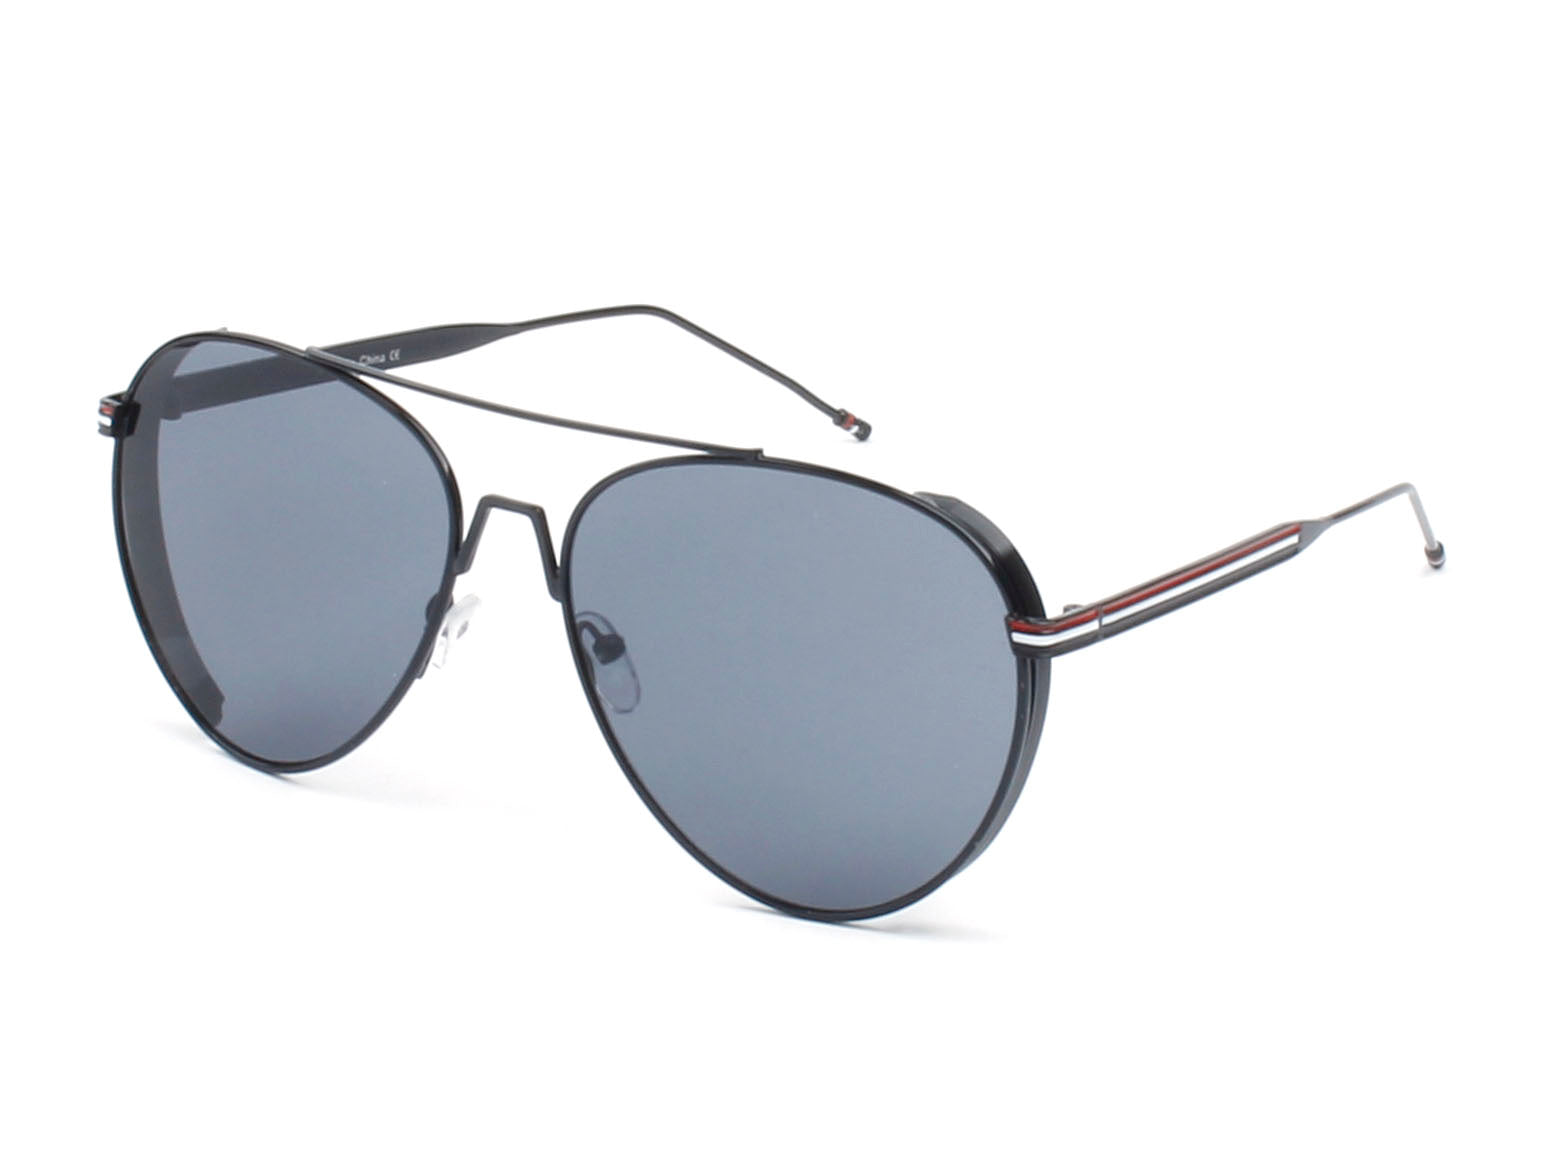 Classic Metal Aviator Fashion Sunglasses for Men and Women - Black